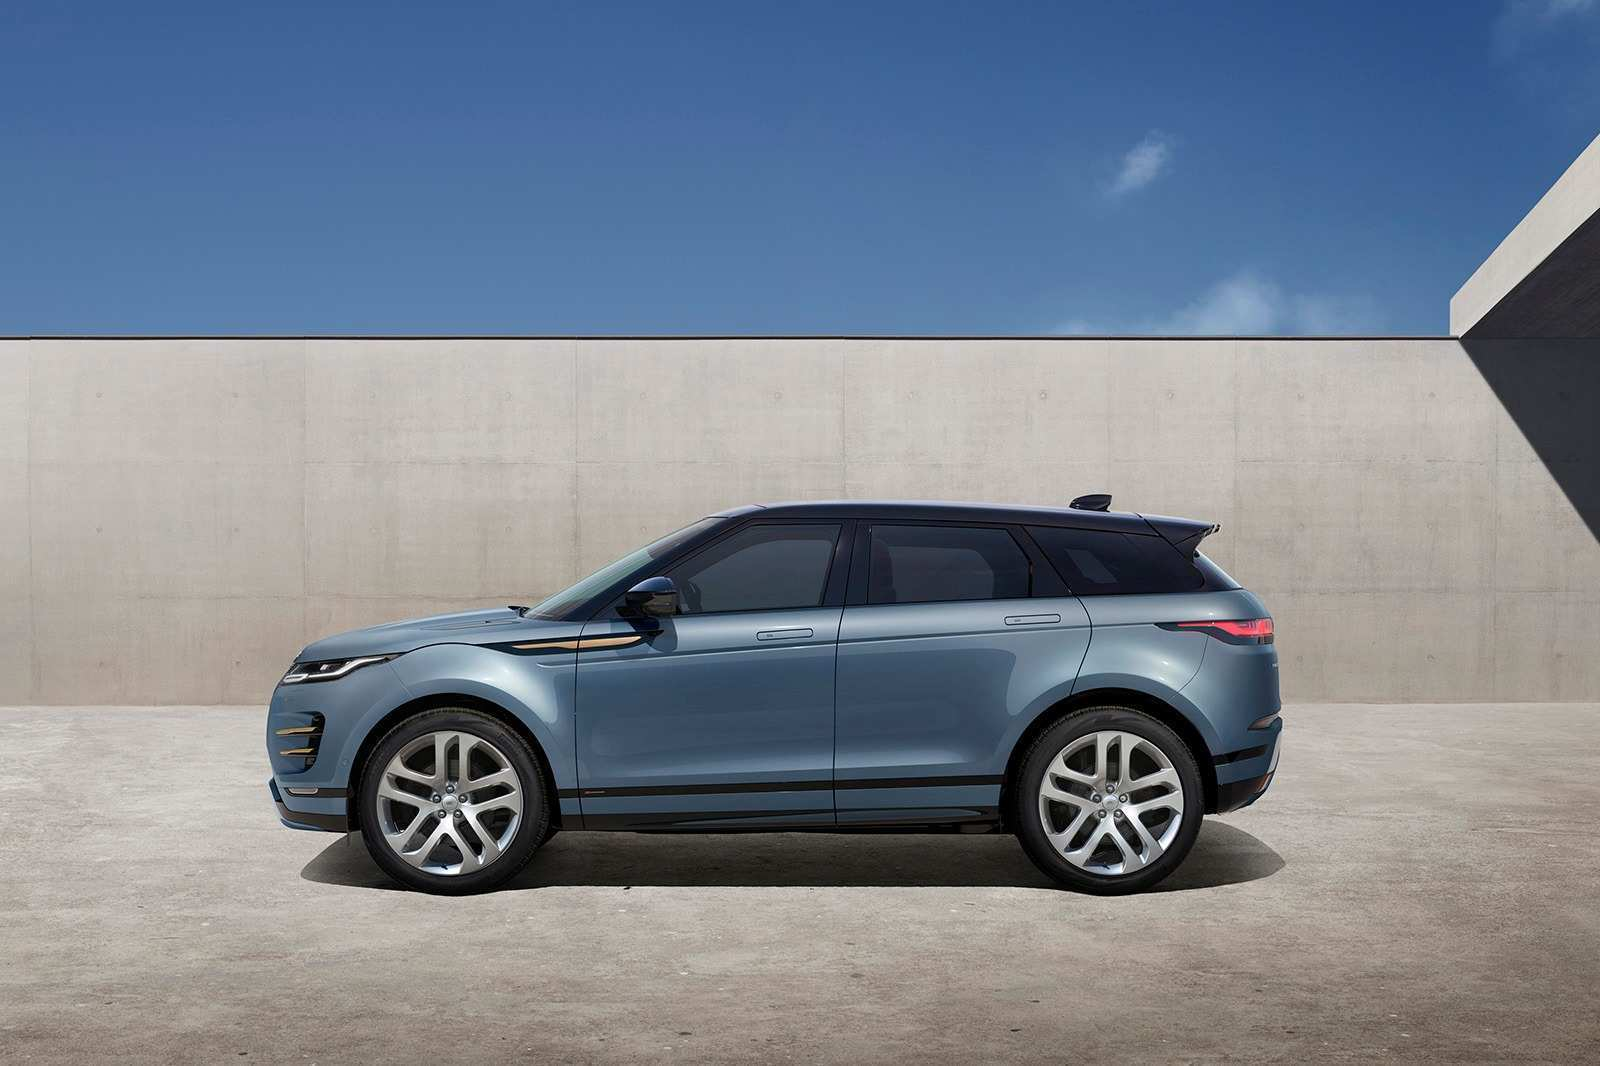 61 Great 2020 Range Rover Evoque Specs and Review for 2020 Range Rover Evoque